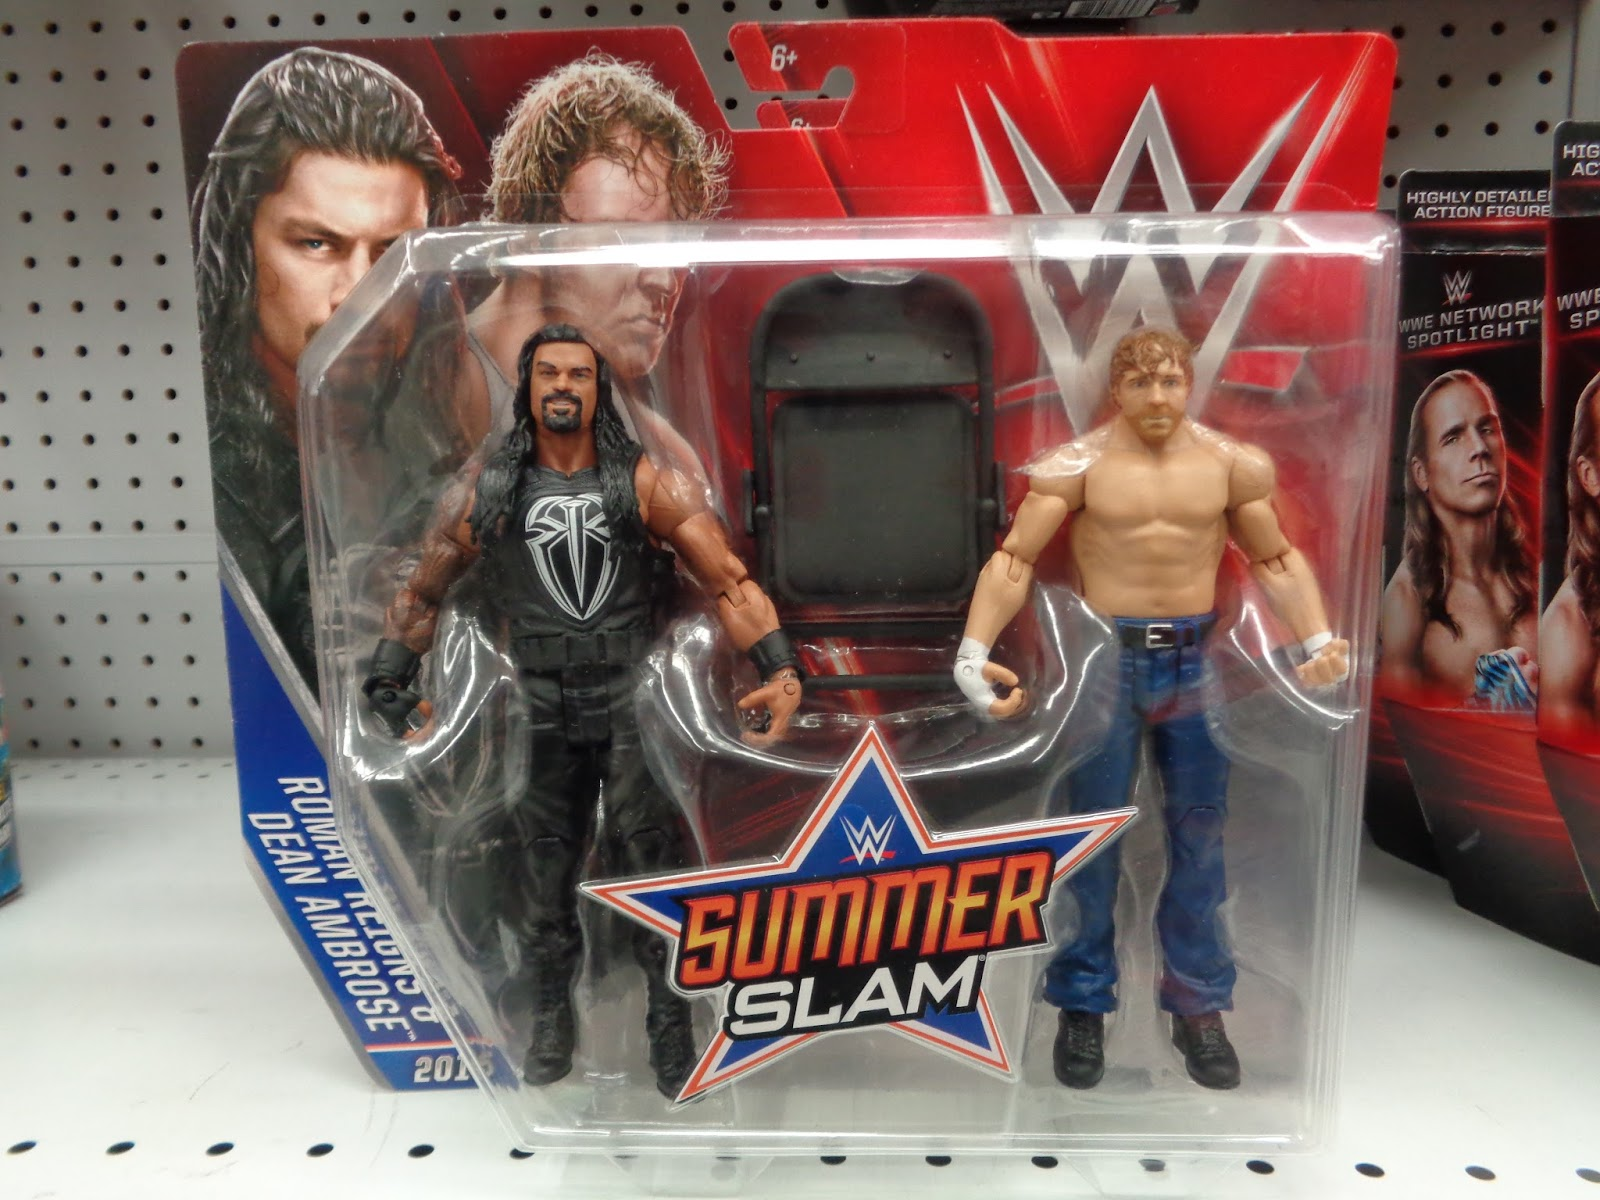 steel chair used in wwe swing lounge j and toys summer slam heritage figures at r us